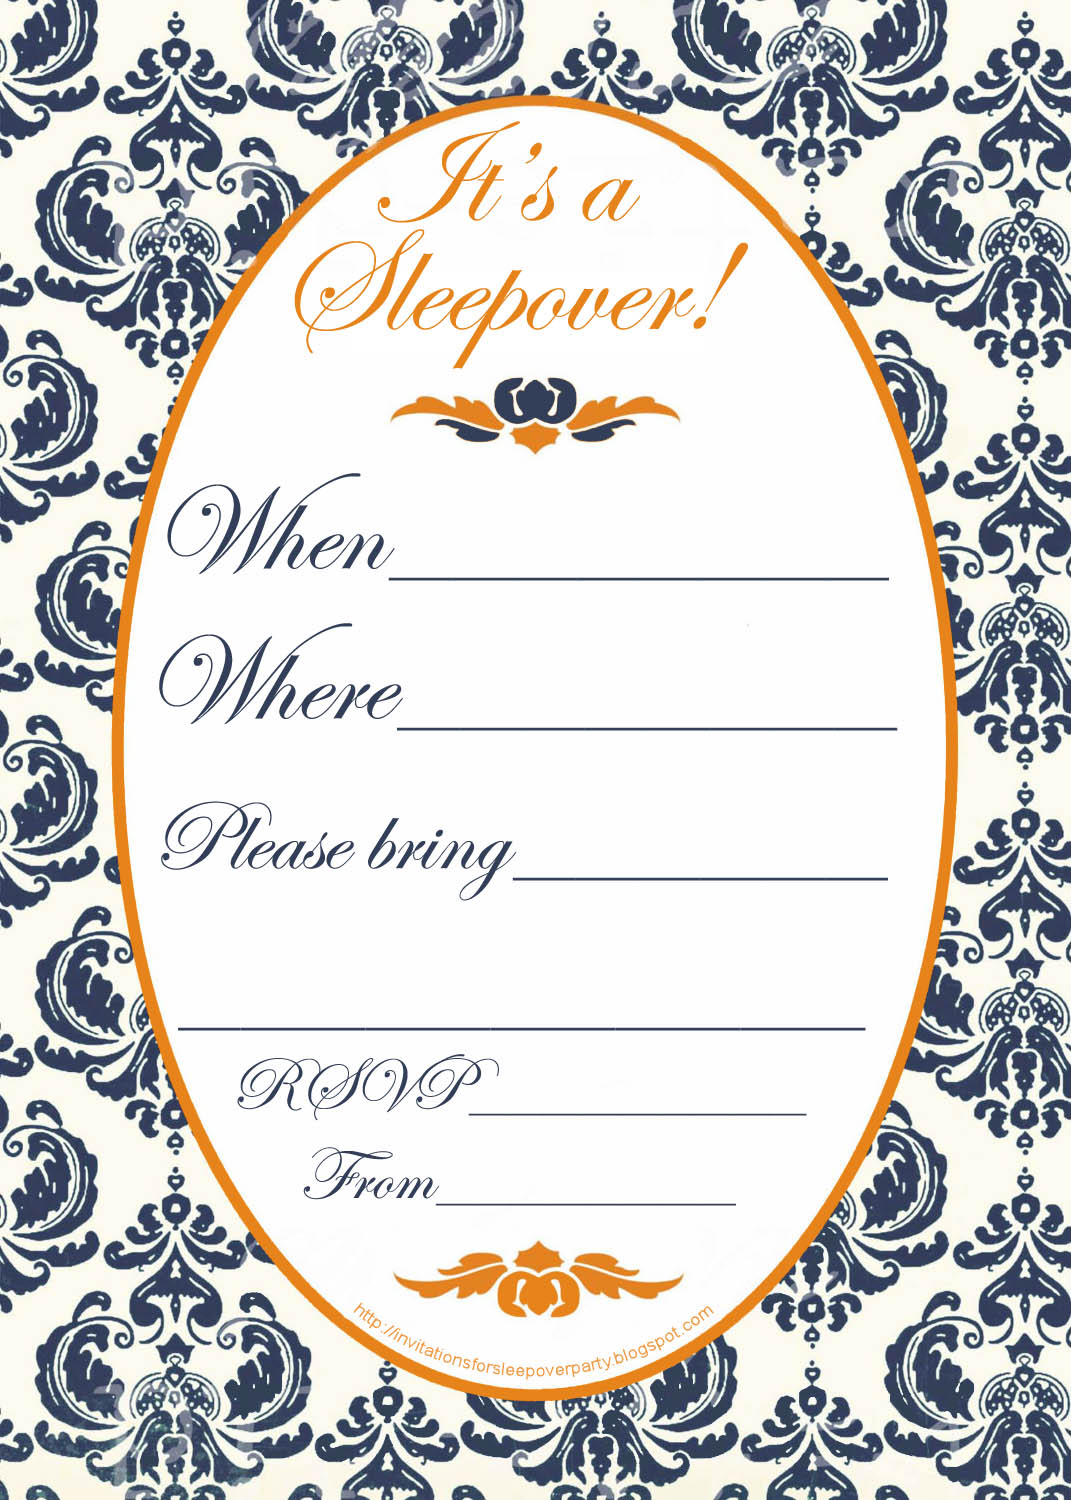 This is an image of Handy Printable Sleepover Invitations